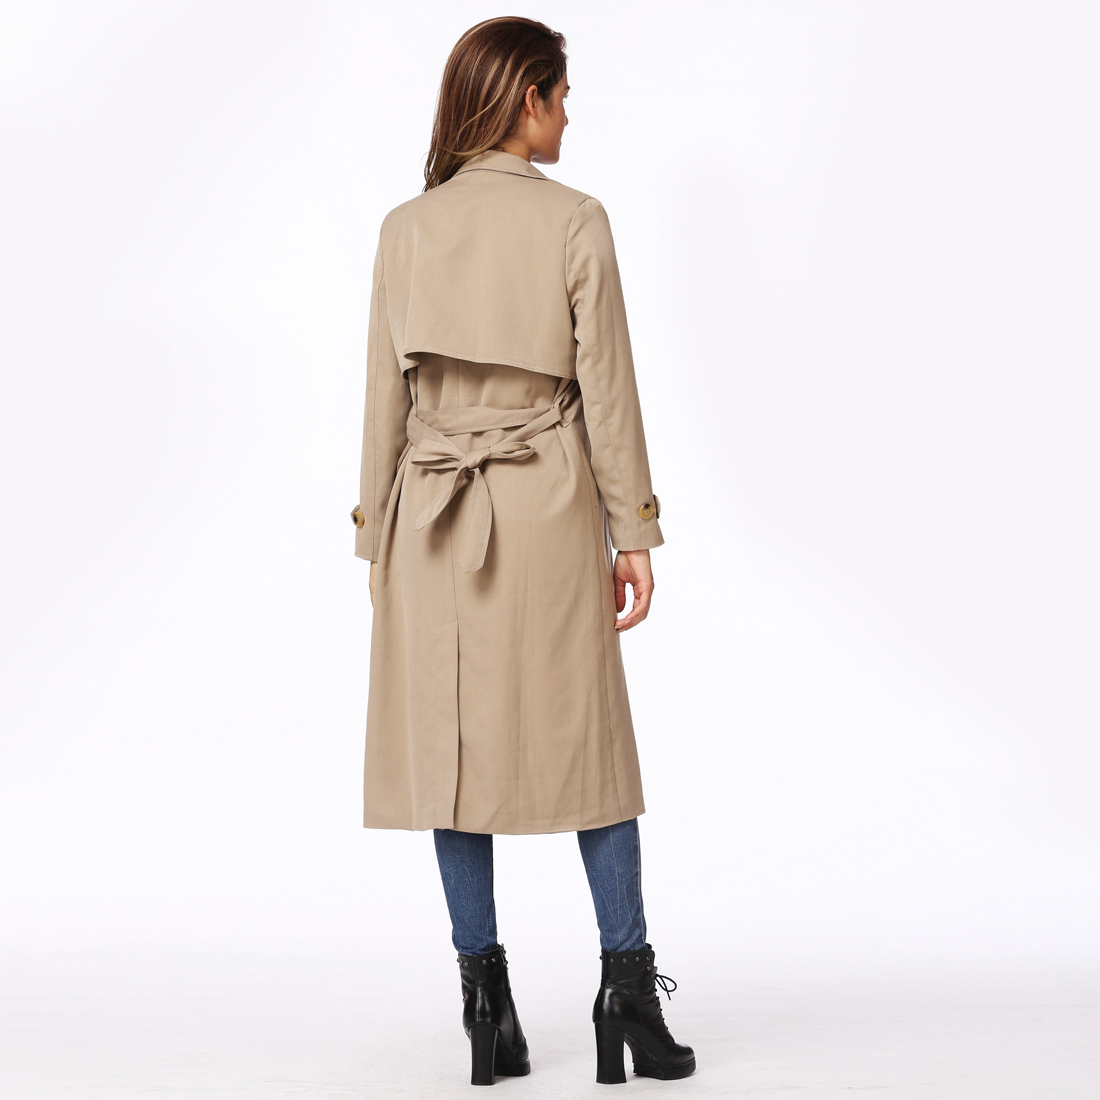 Autumn Winter New Long   Trench   Coat Turn-down Collar Double-breasted Button Closure Long Sleeves Windbreaker Coat casaco feminino